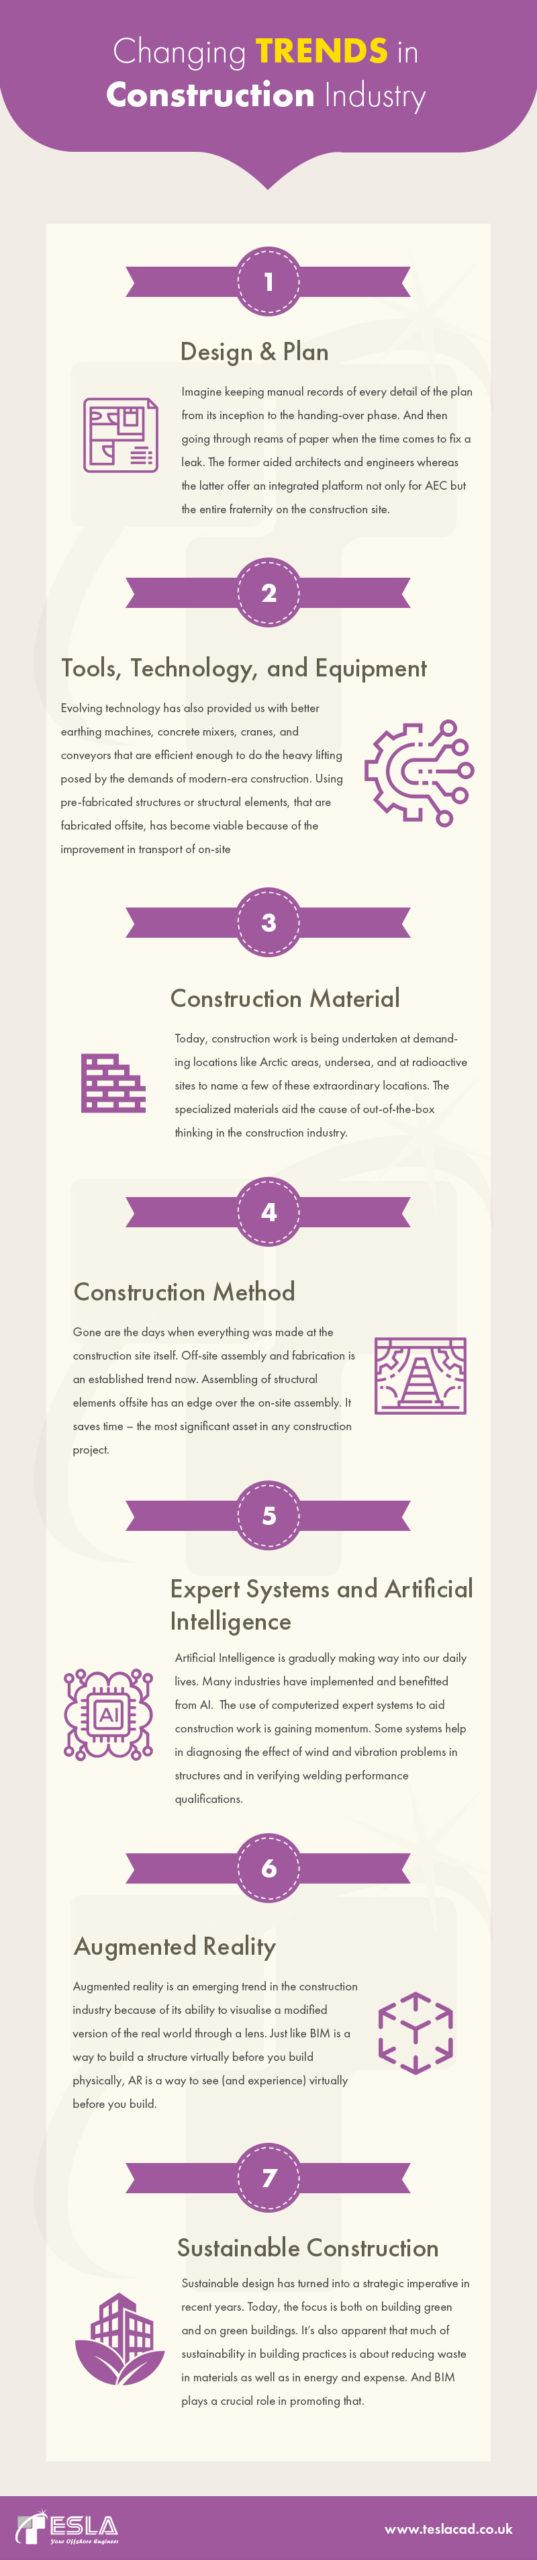 trends in construction